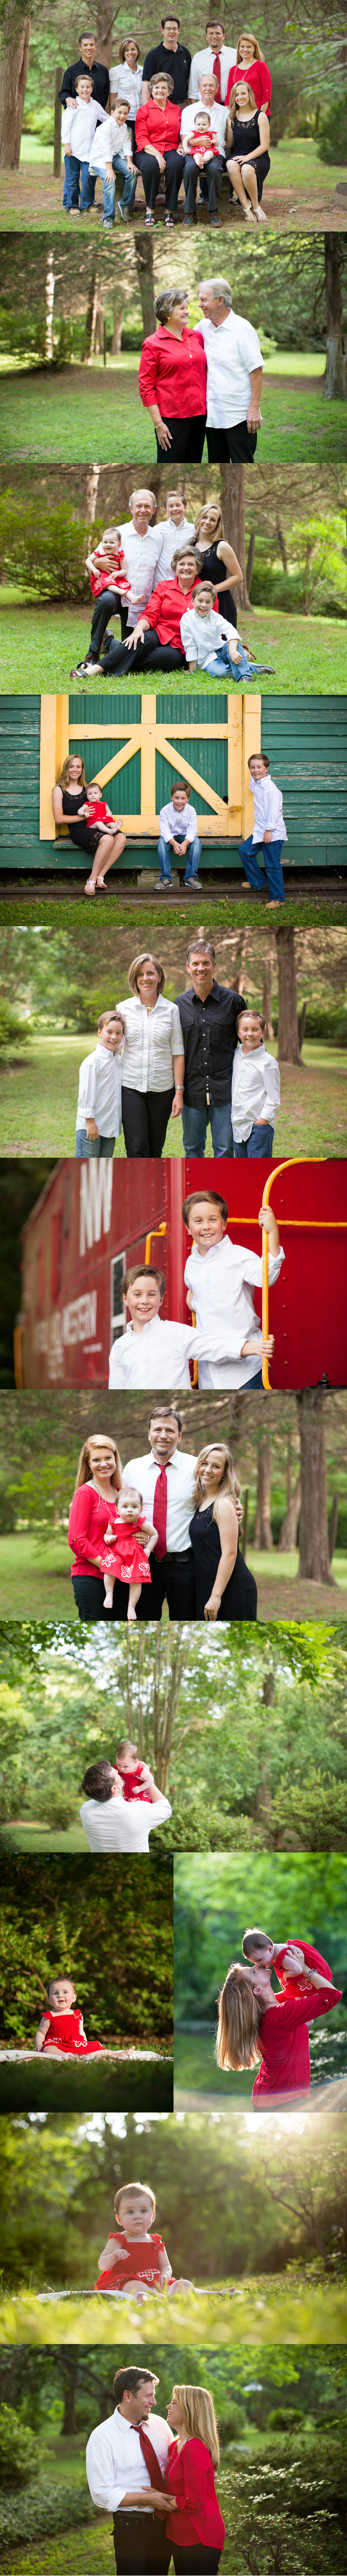 GermantownFamilySession